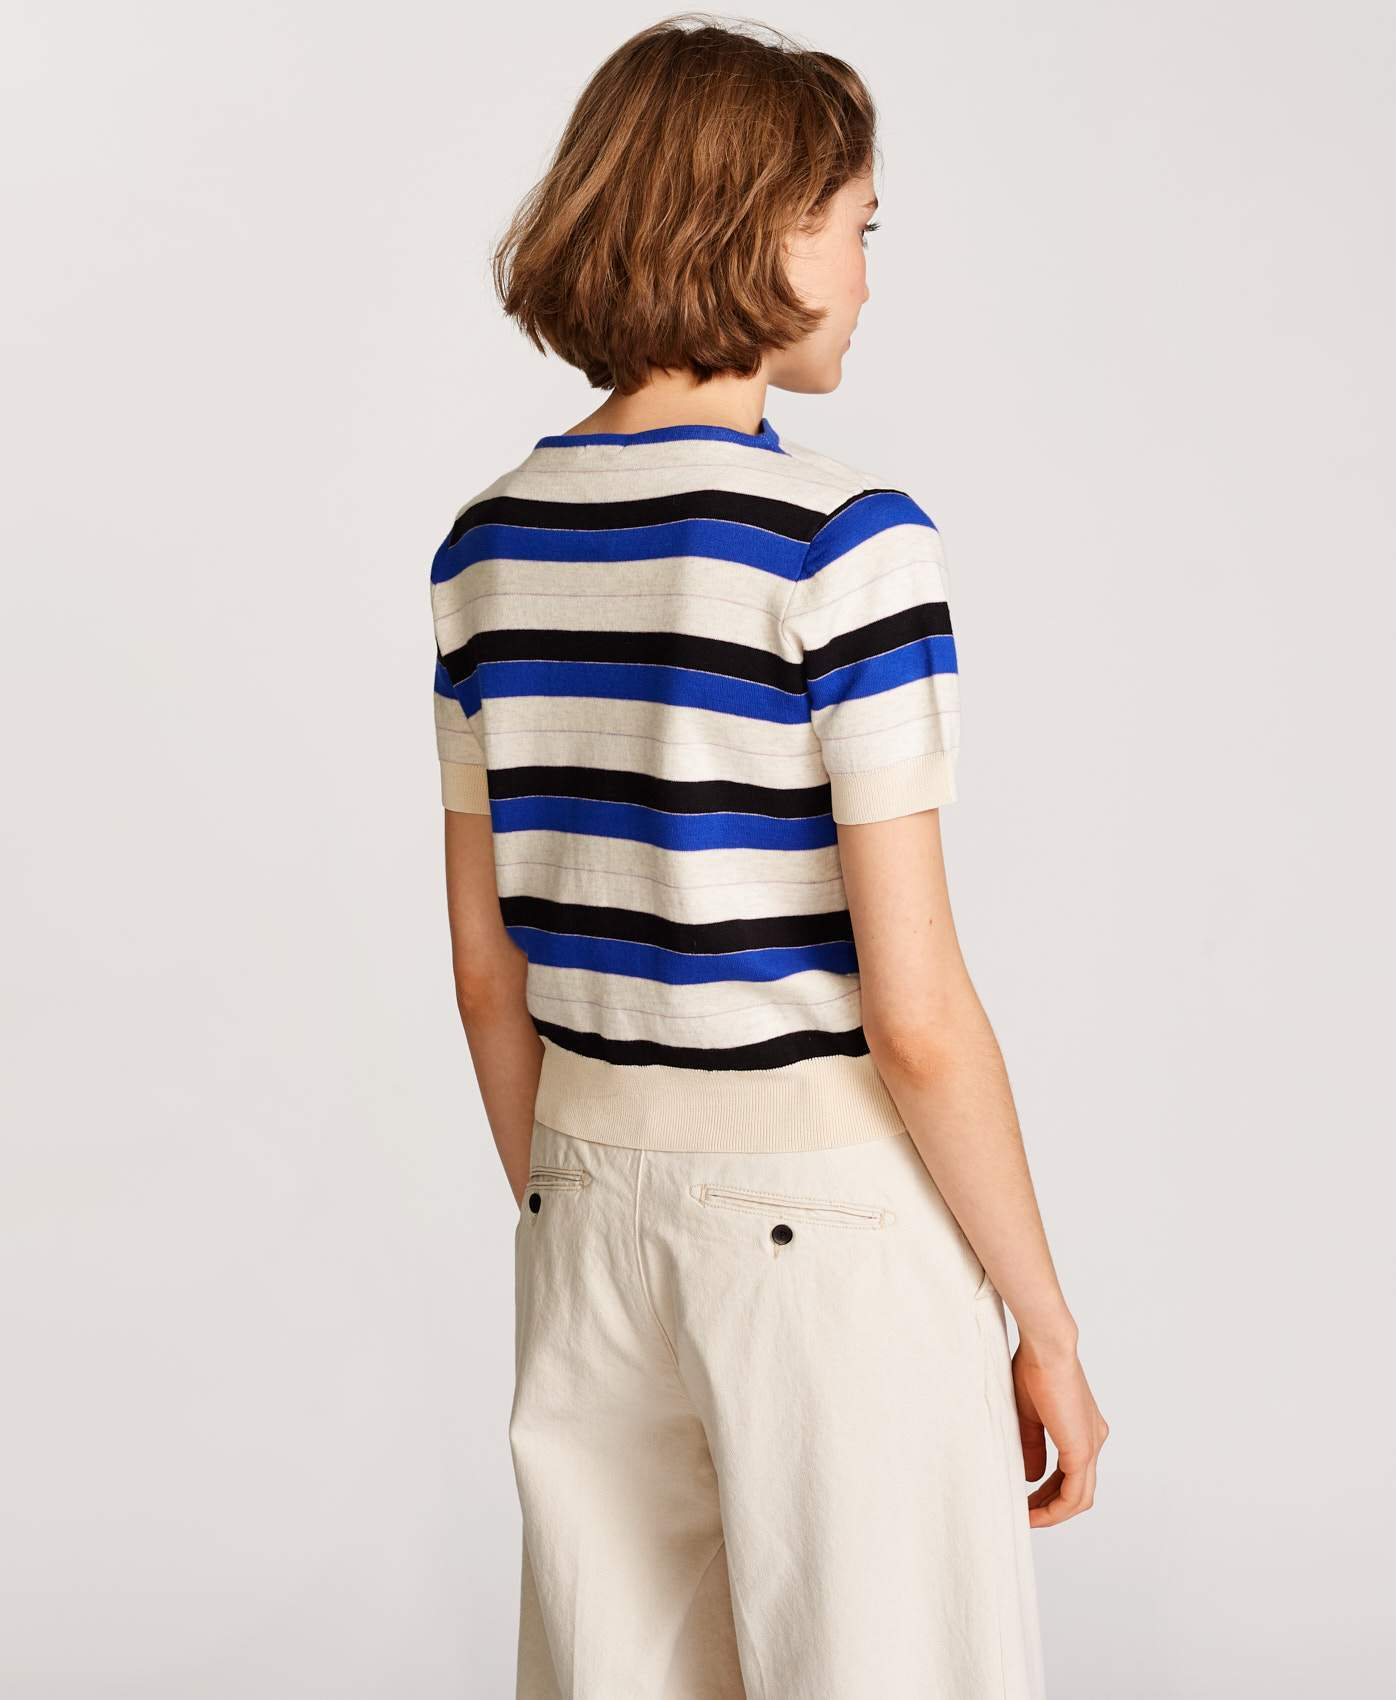 Bellerose striped short sleeves knitwear for women